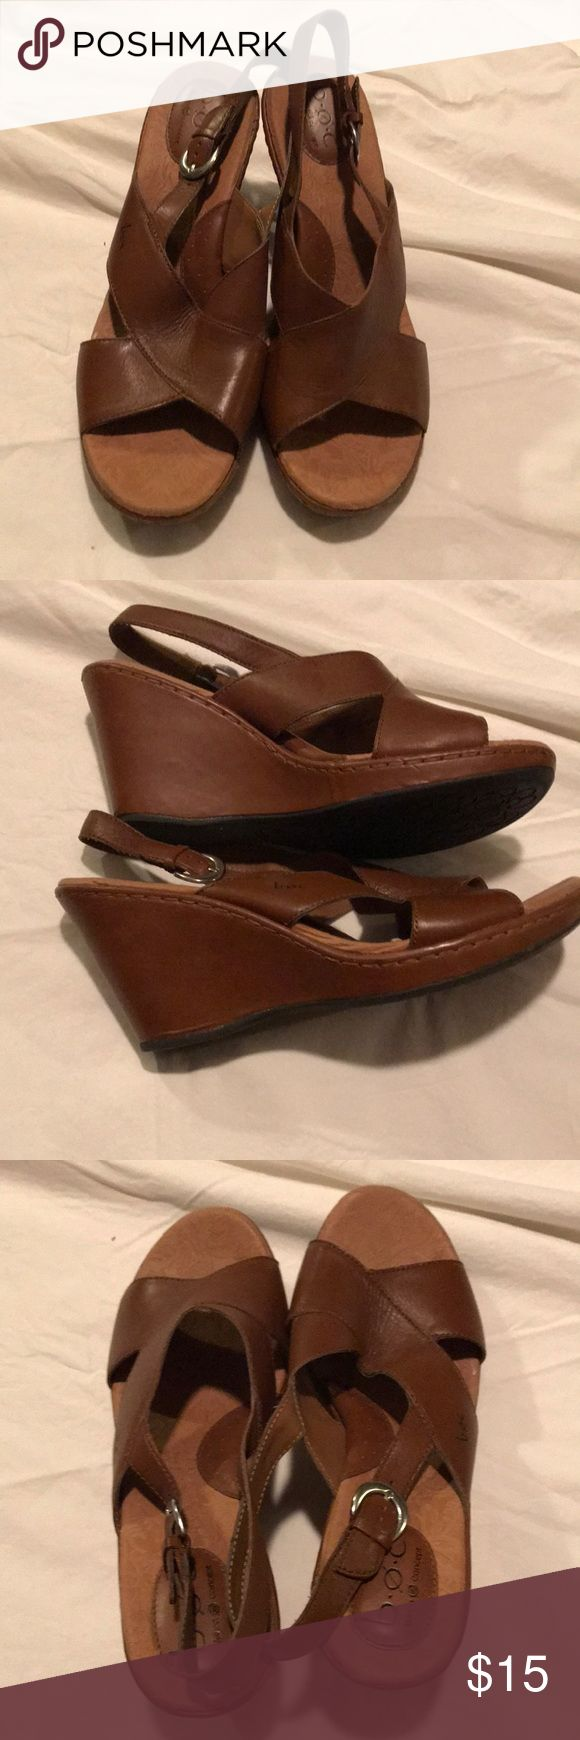 Brown leather wedges Brown leather wedge sandals. Never worn b.o.c. Shoes Wedges